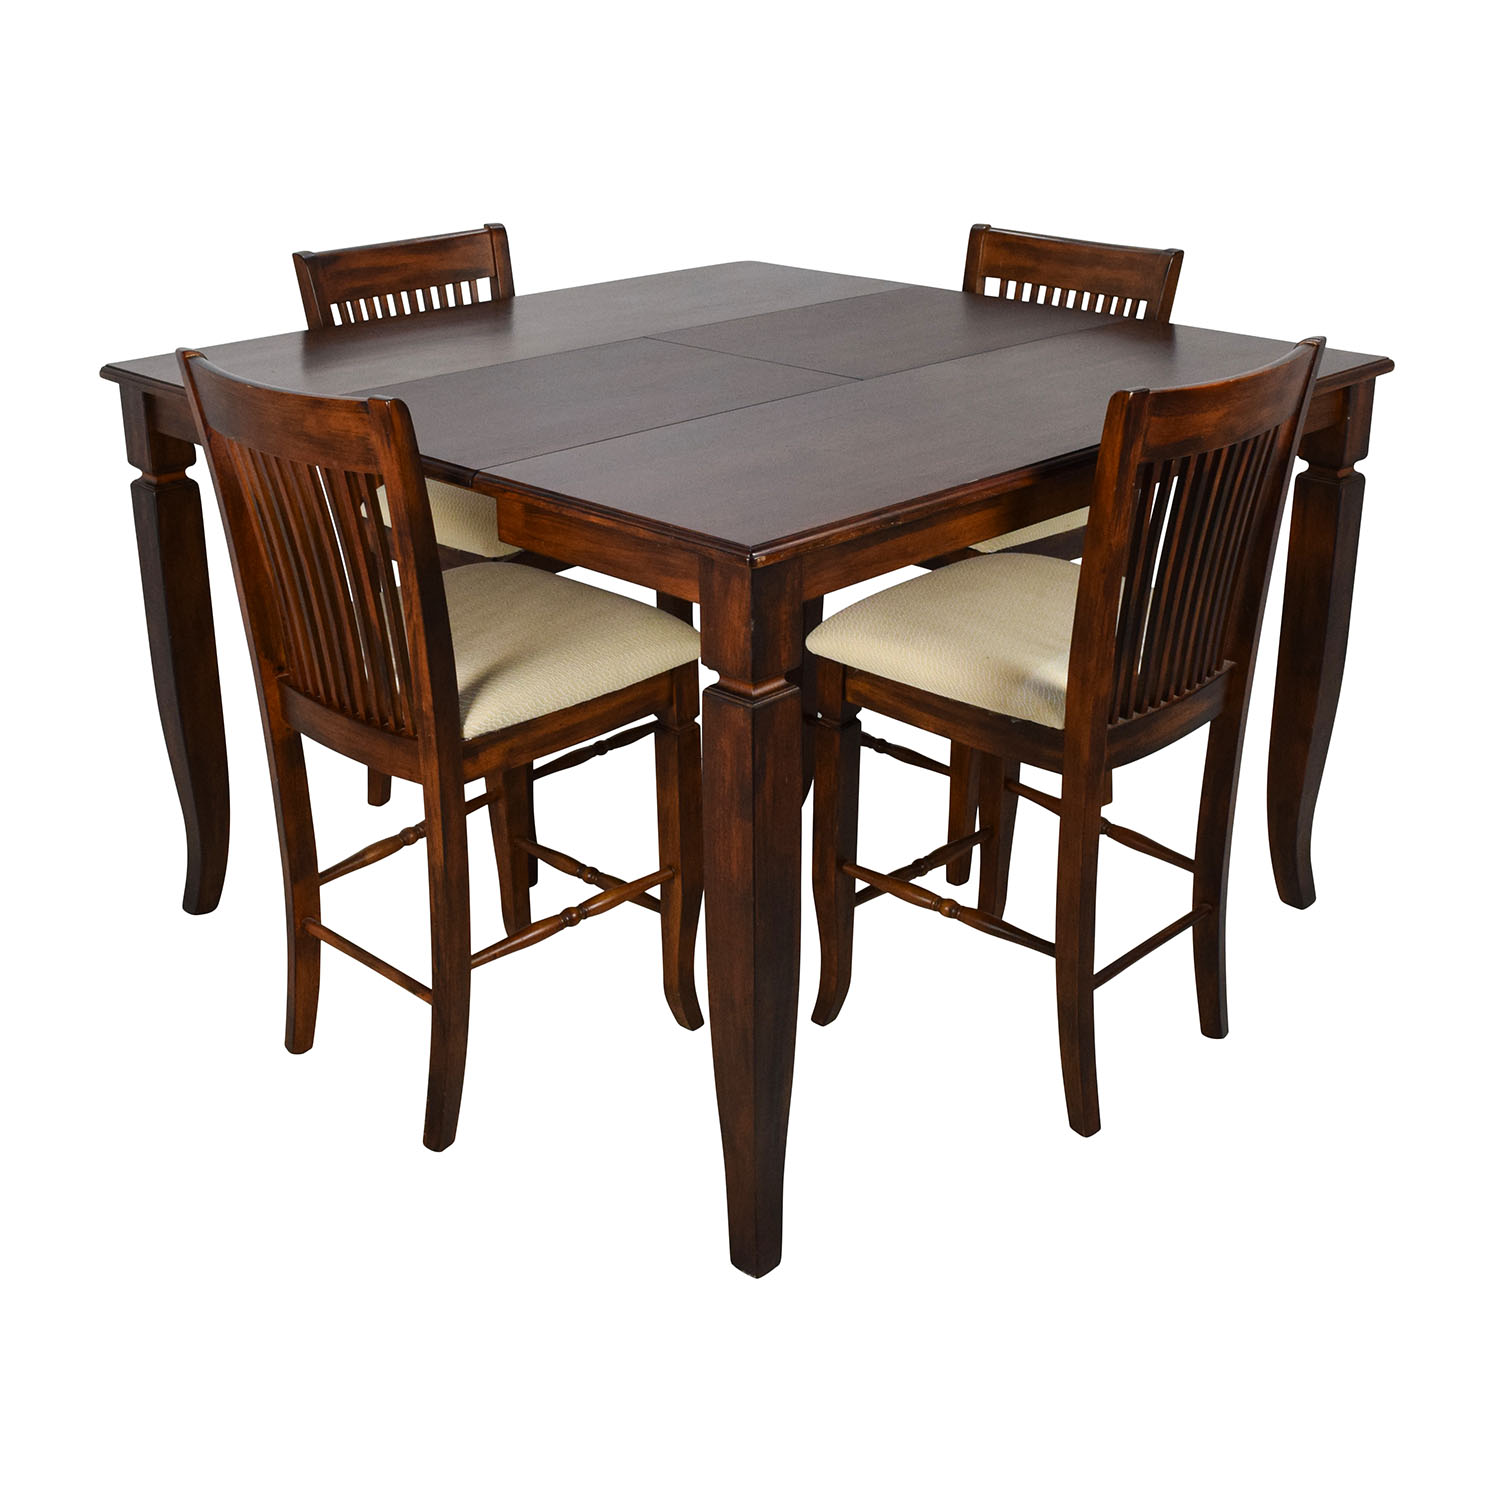 75 off tall extendable dining room table set tables for Dining room extendable table